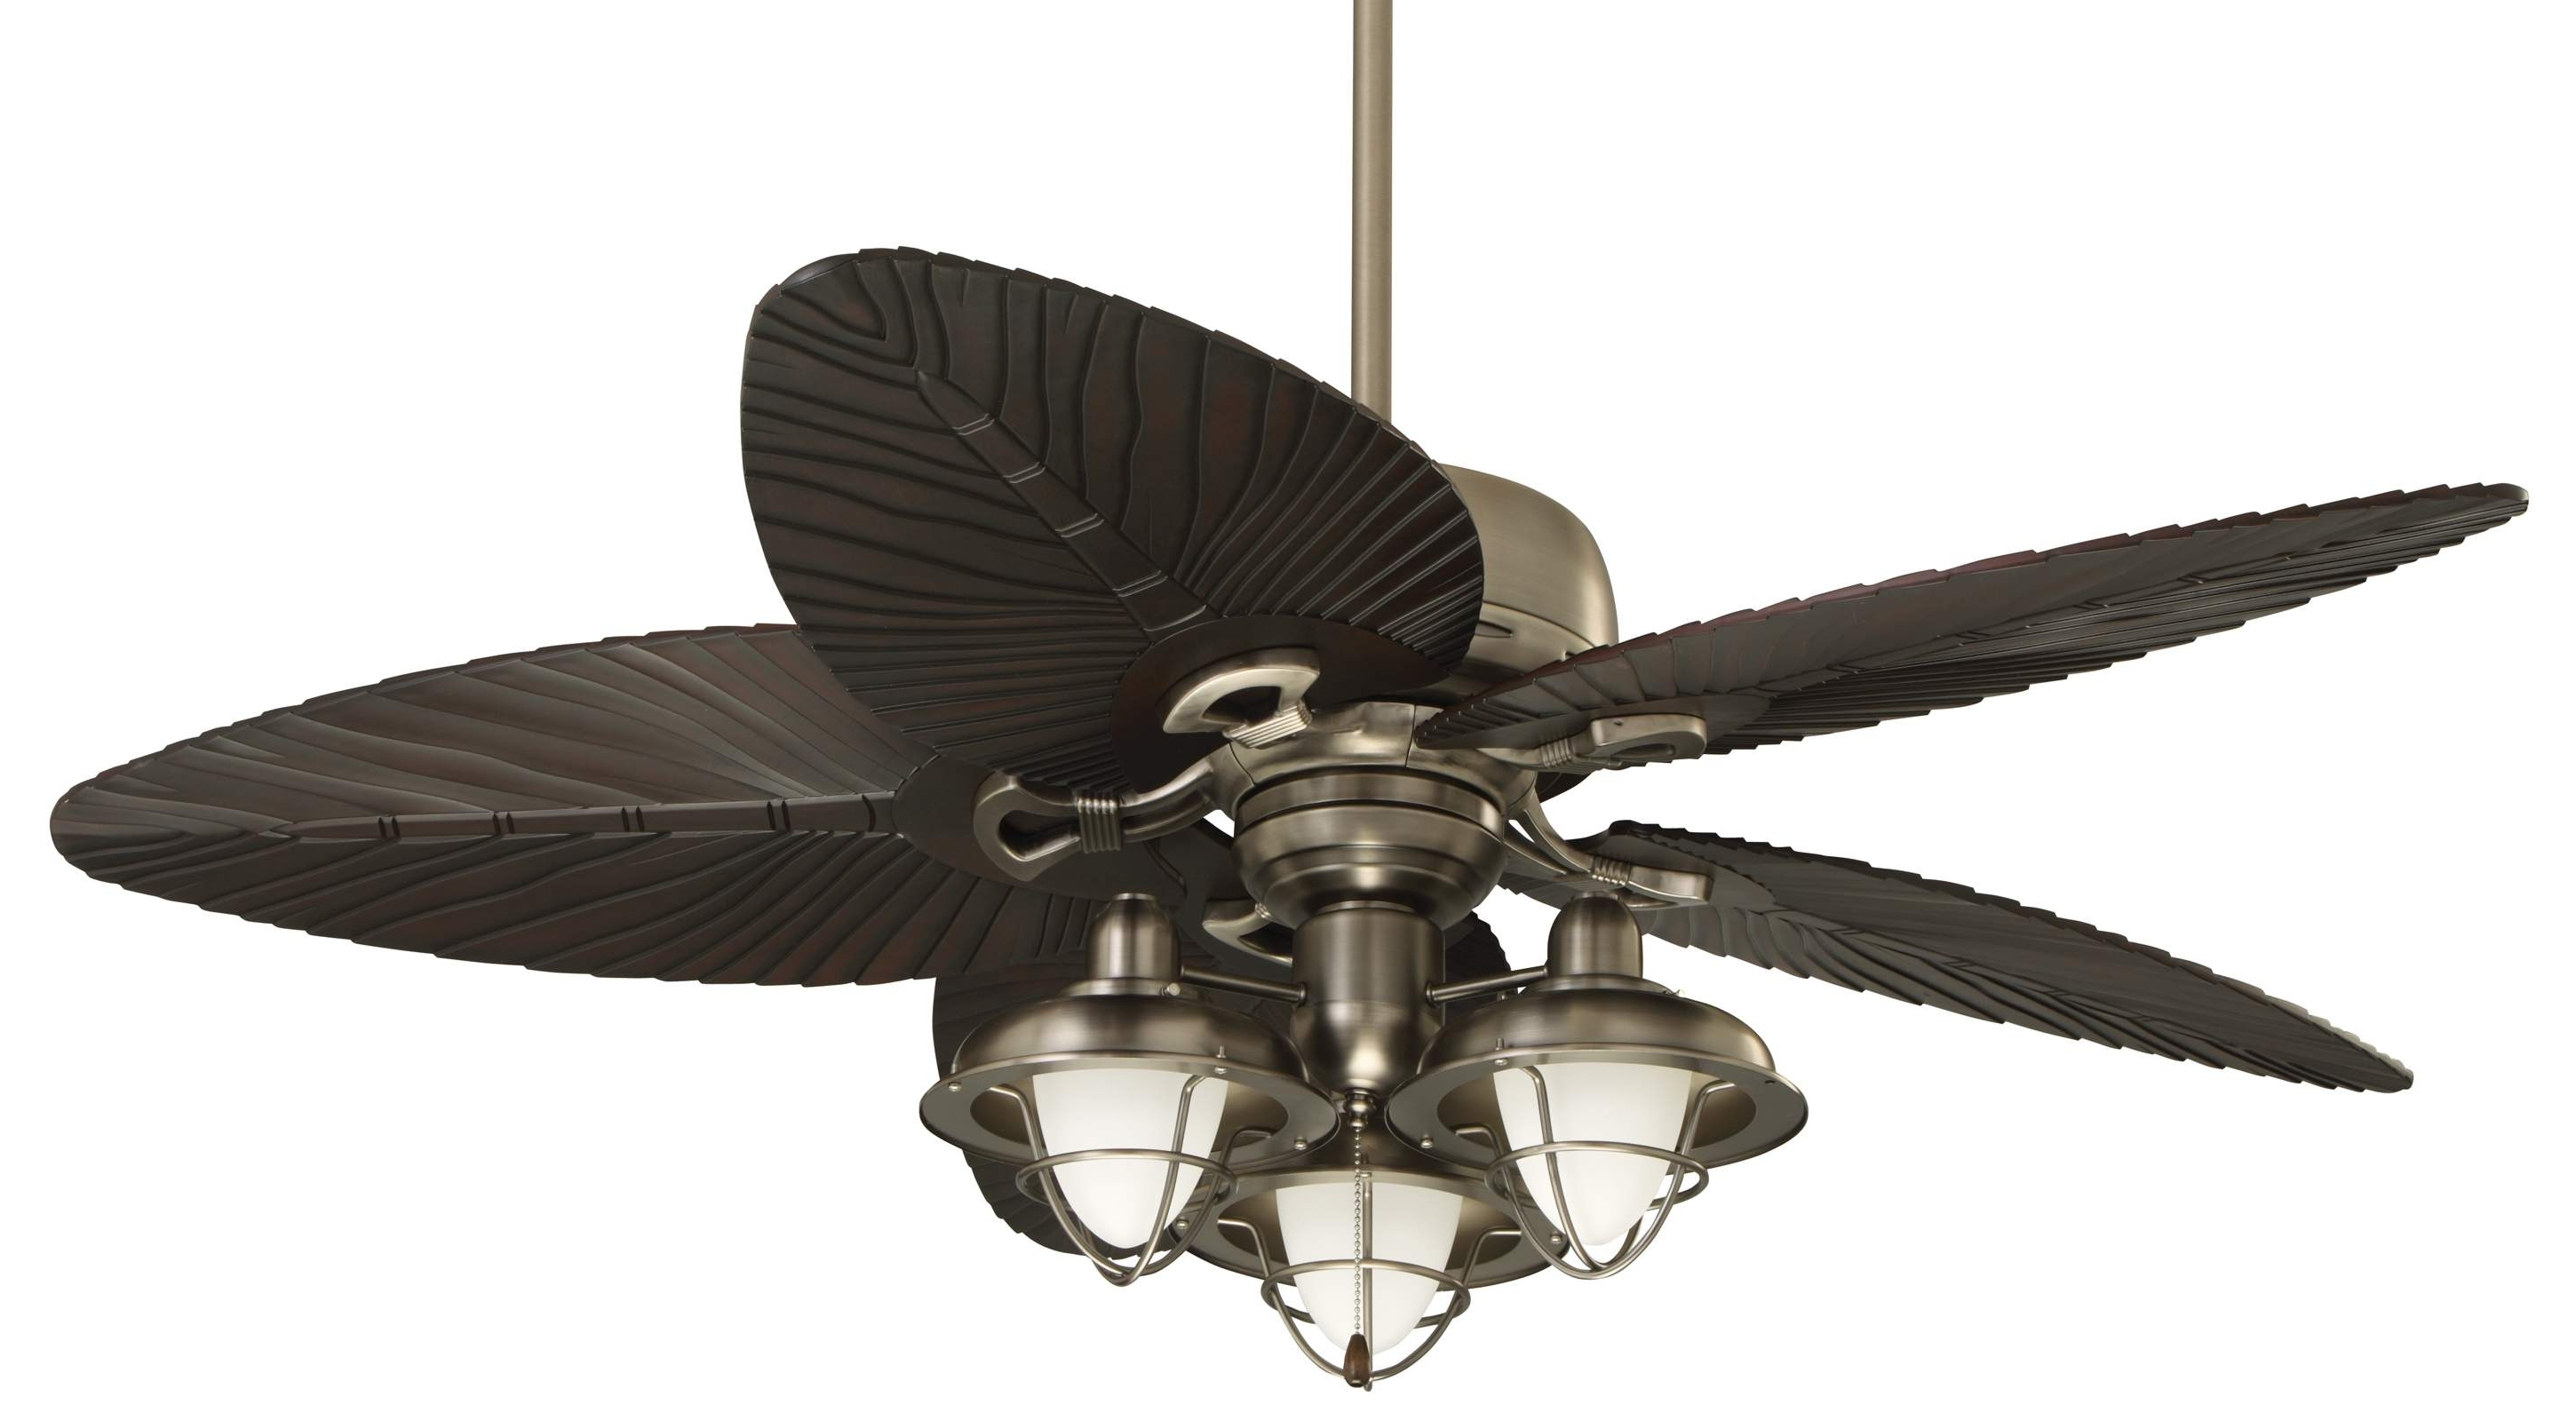 Tropical Outdoor Ceiling Fans – Pixball With Regard To Trendy Tropical Design Outdoor Ceiling Fans (View 18 of 20)